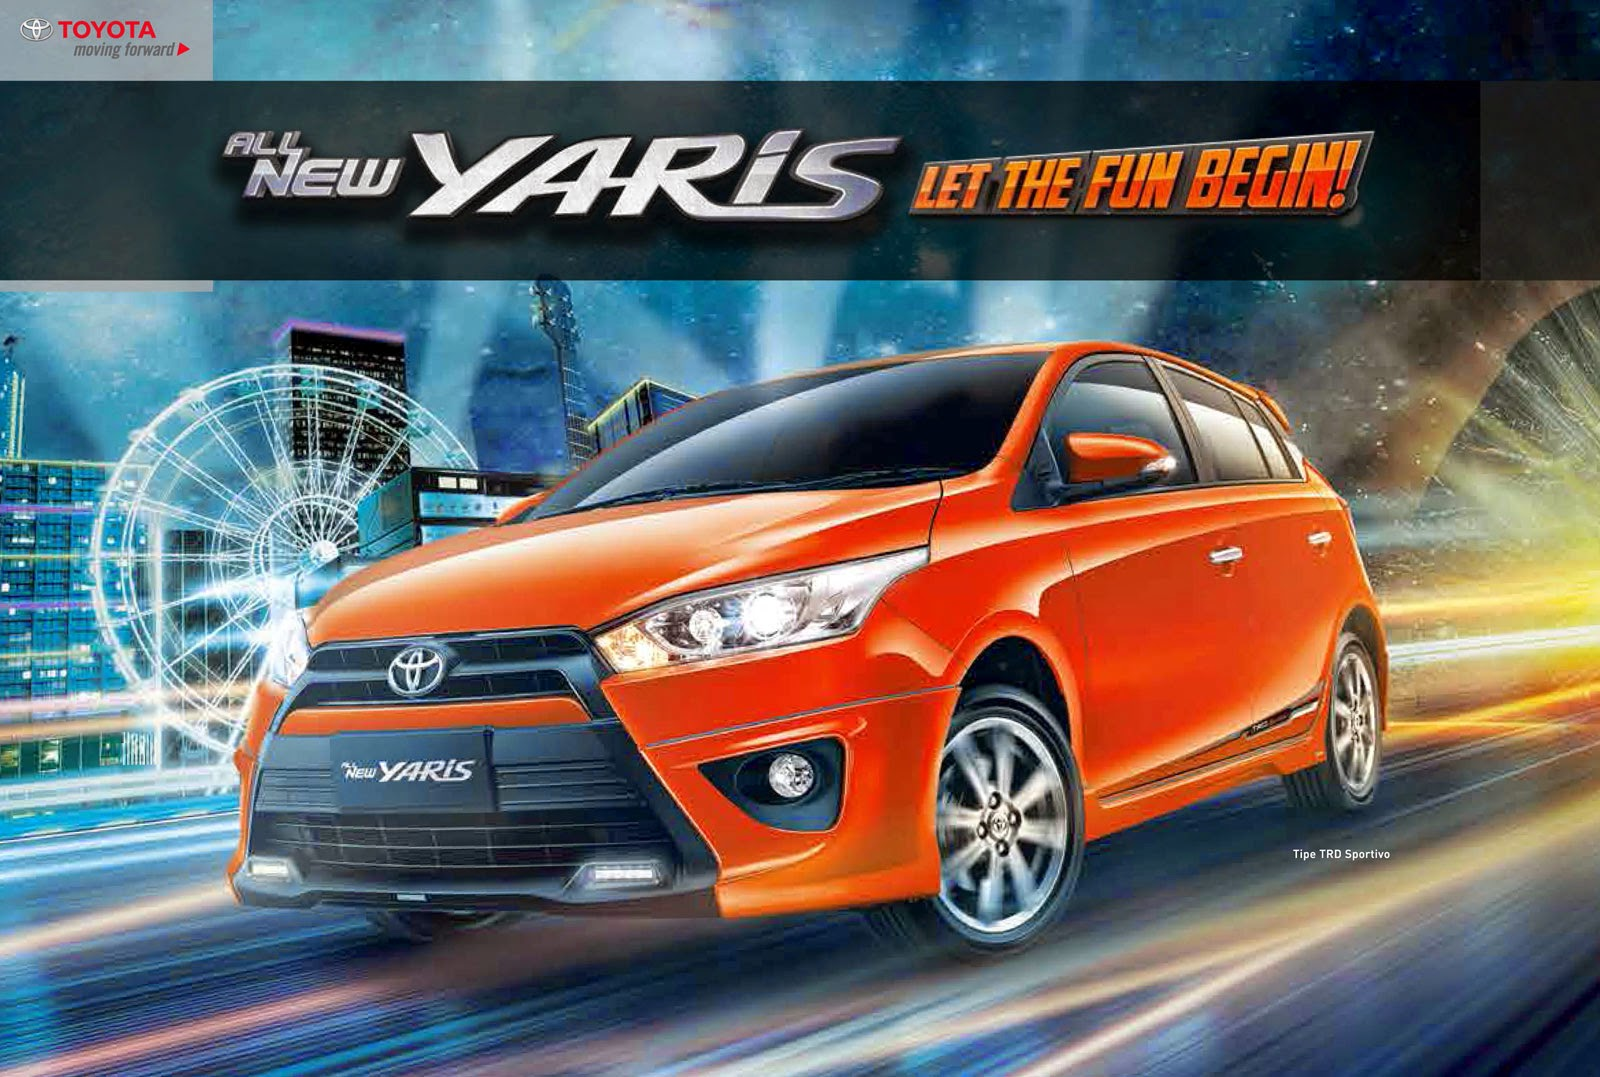 Toyota All New Yaris TRD Sportivo